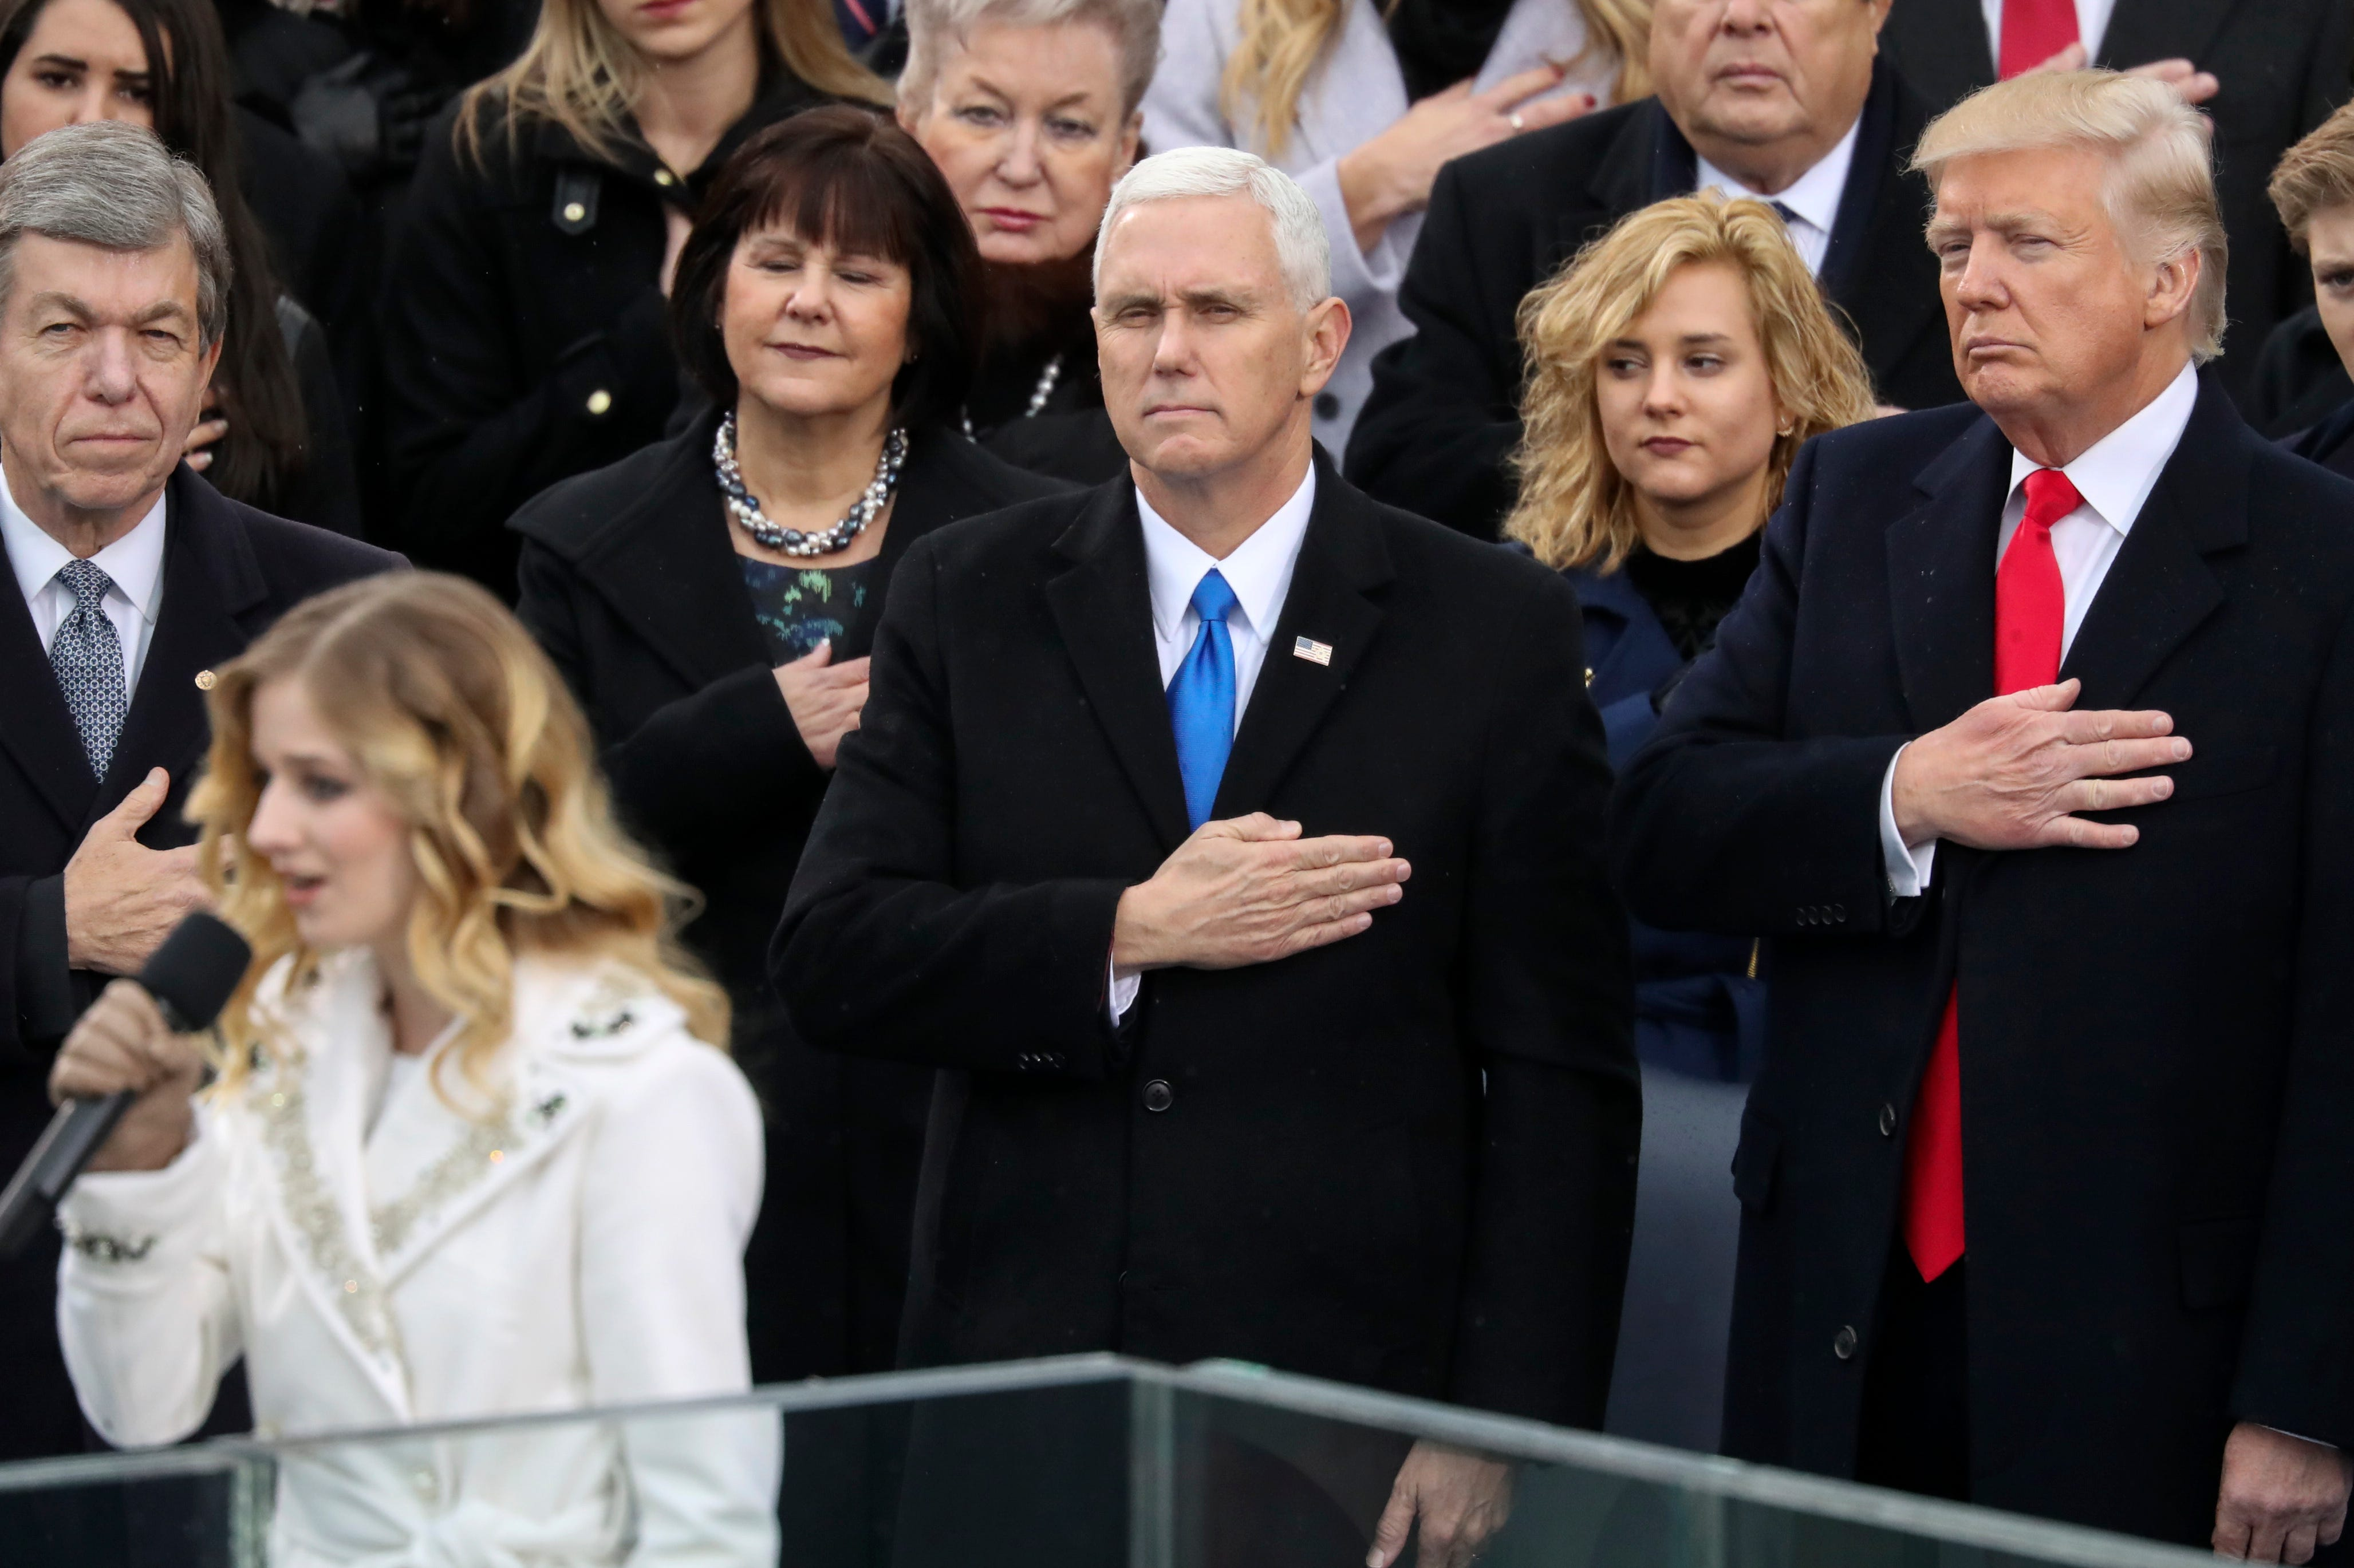 Mike Pence What His Daughter Wants You To Know About The Vice President